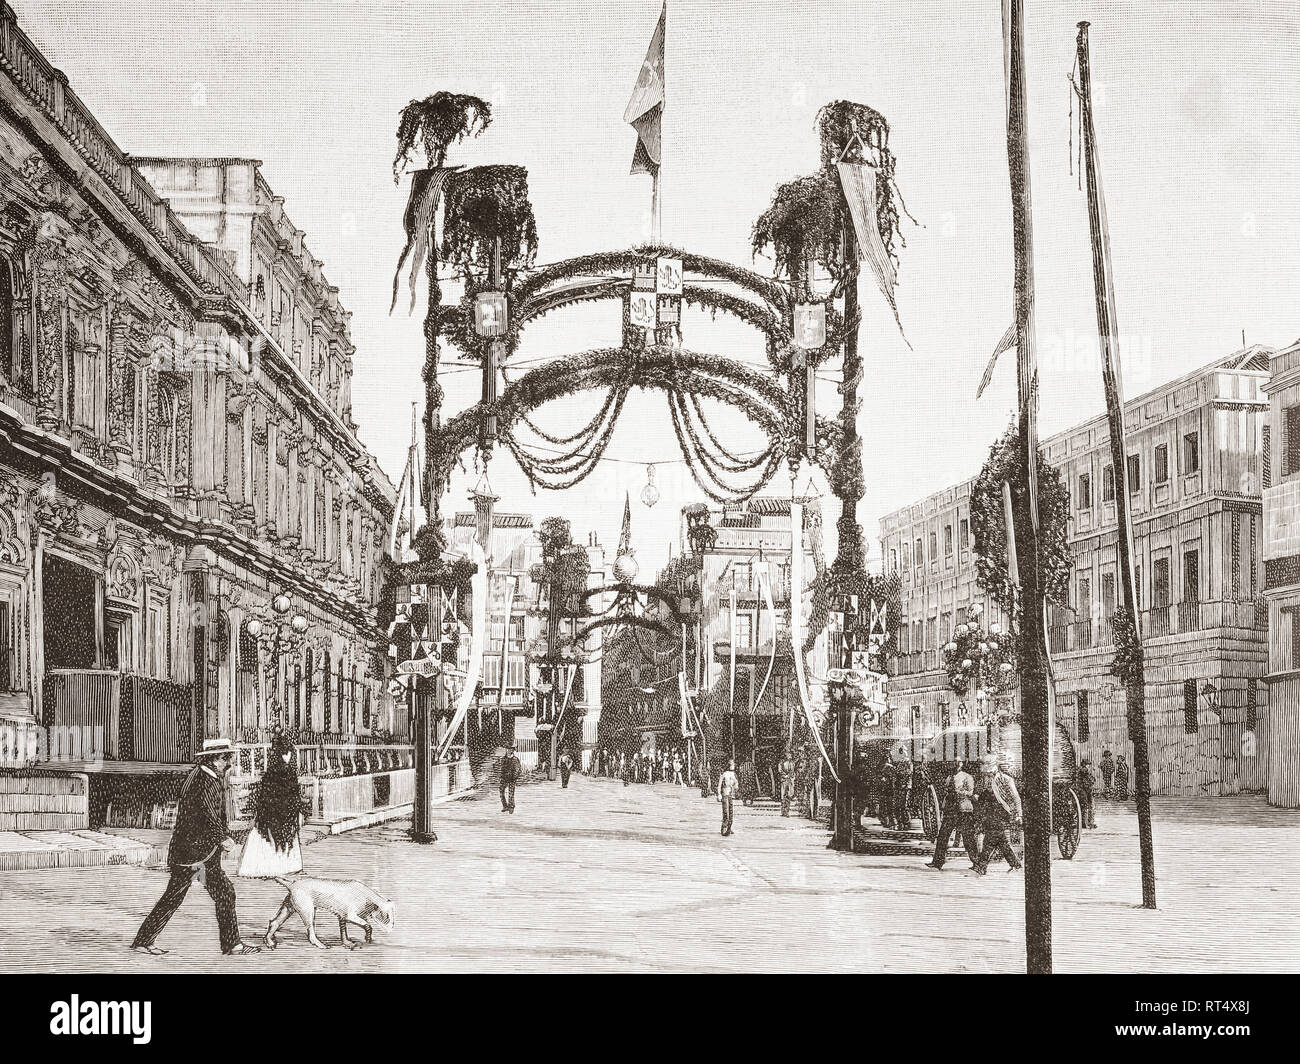 Triumphal arches in the streets of Seville, Spain during the annual Columbian Festival of 1887.  From La Ilustracion Artistica, published 1887. - Stock Image